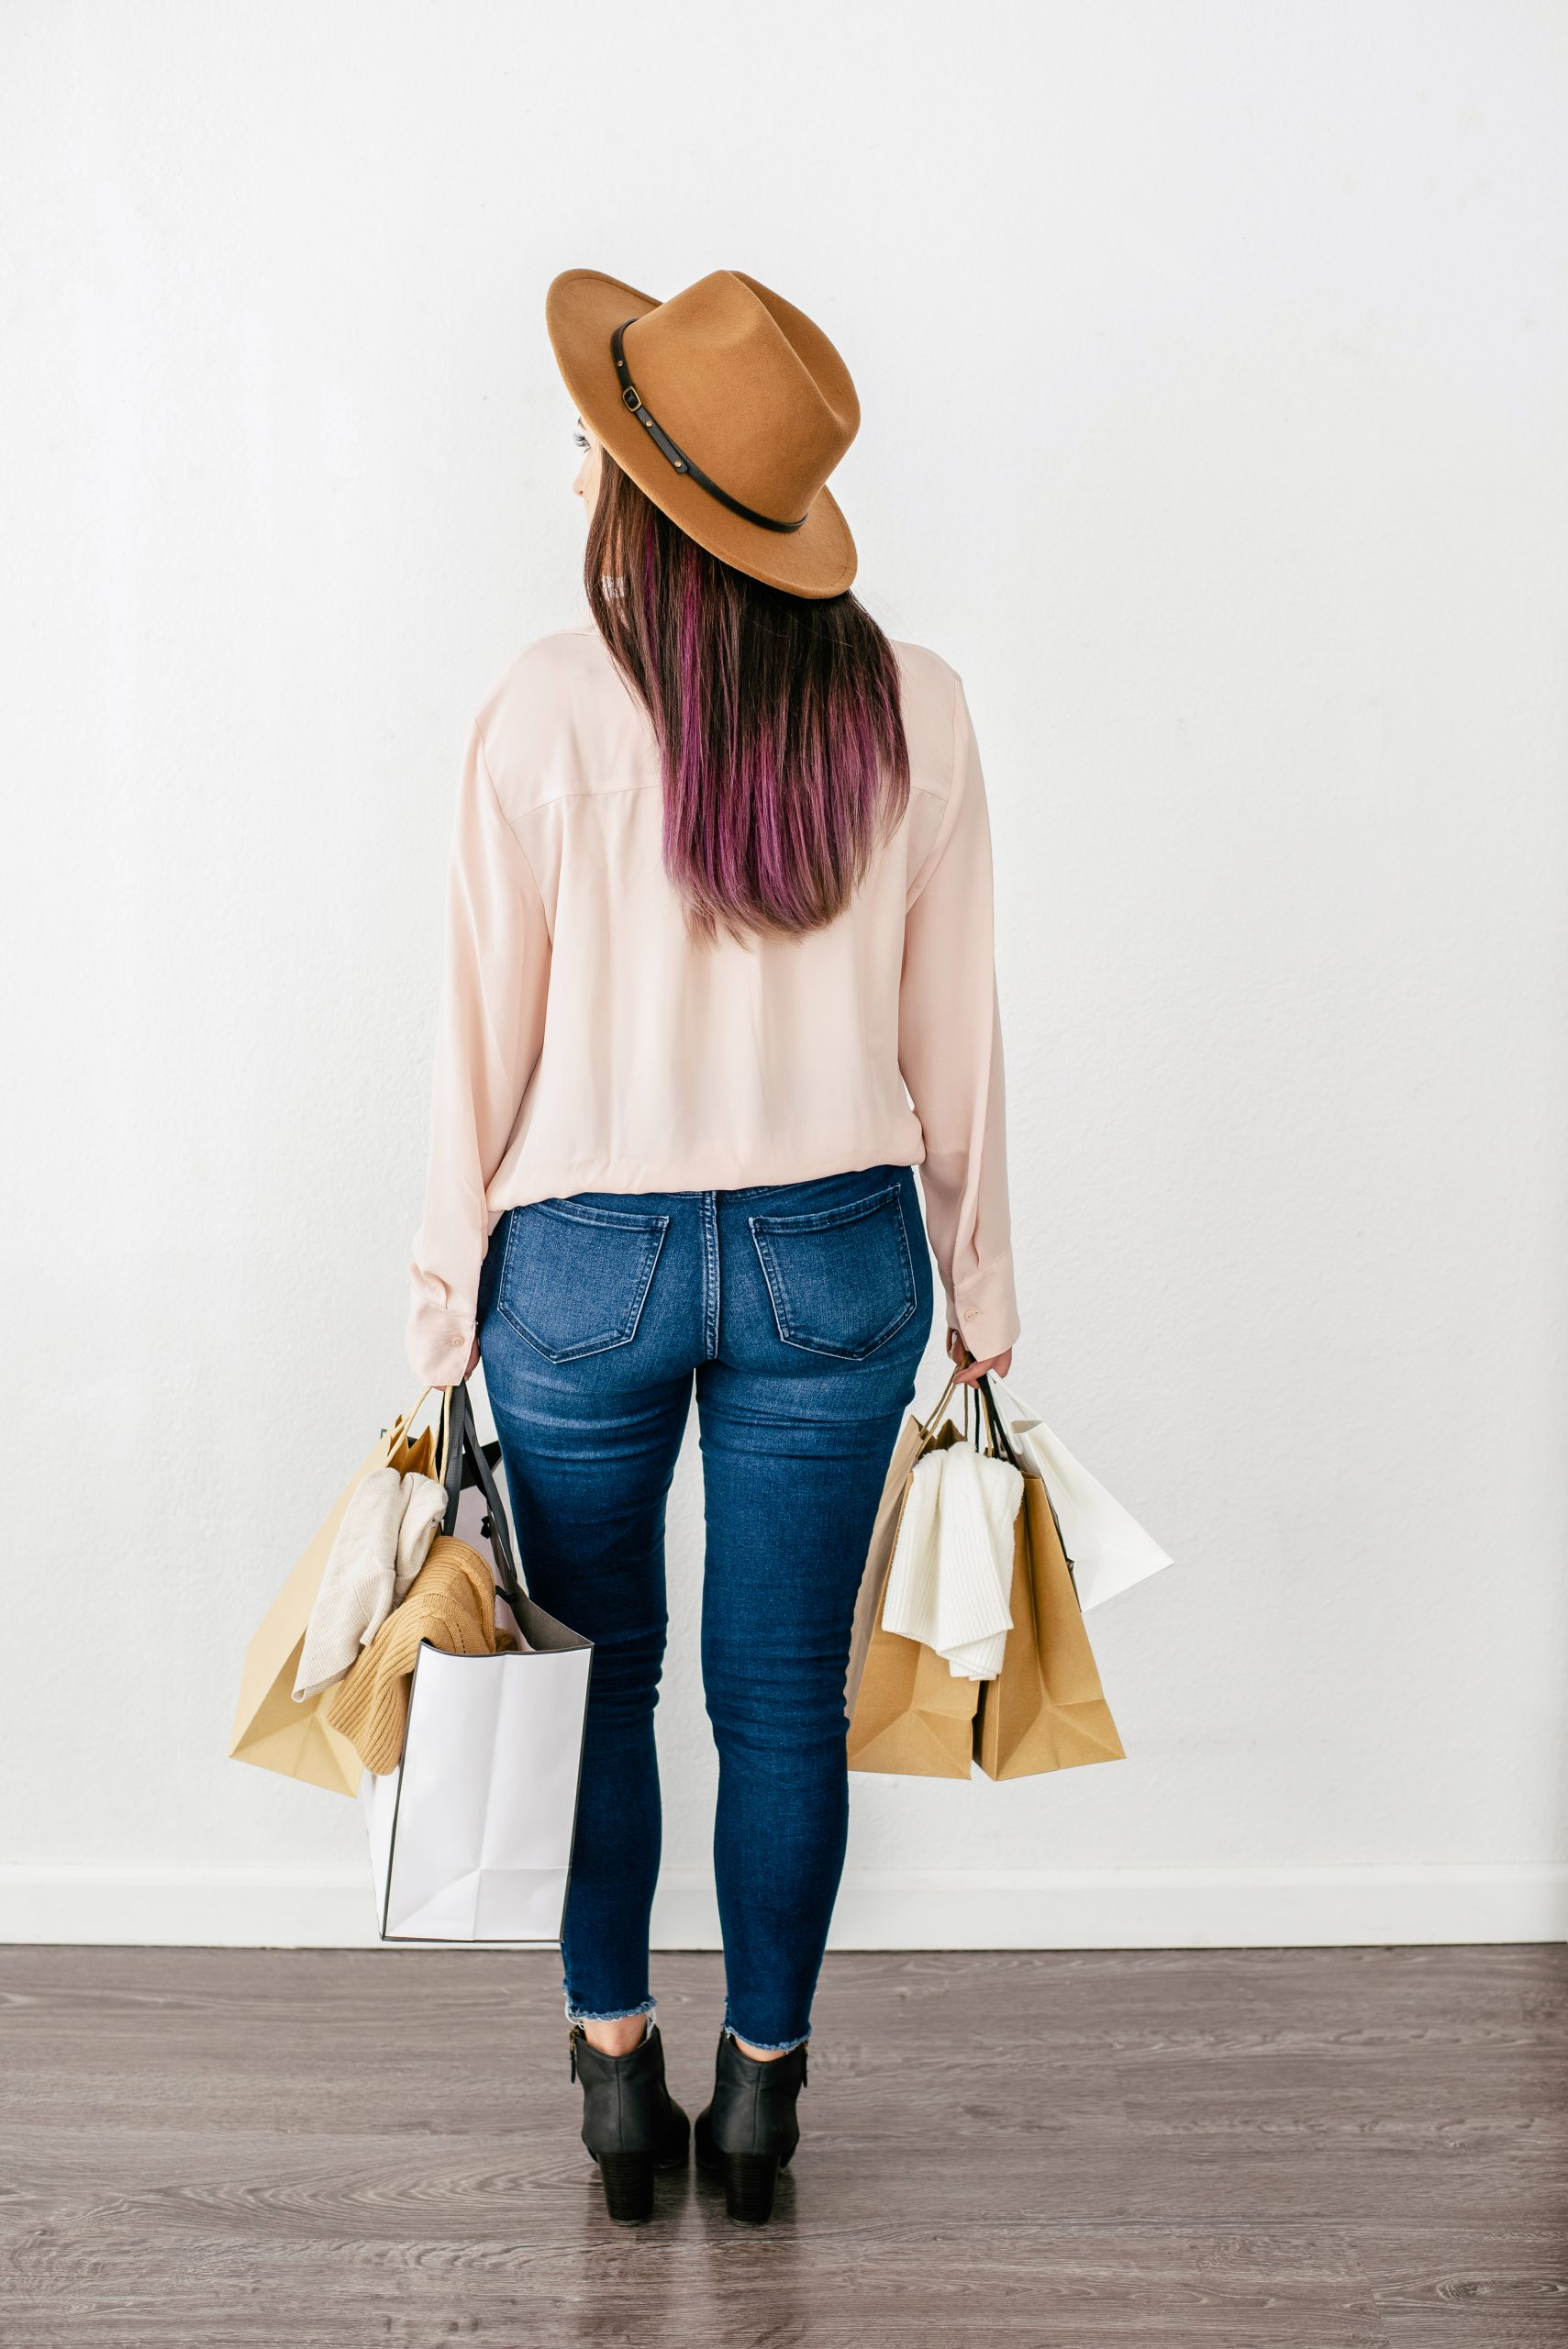 How To Properly Shop For Clothes And What You Should Look For